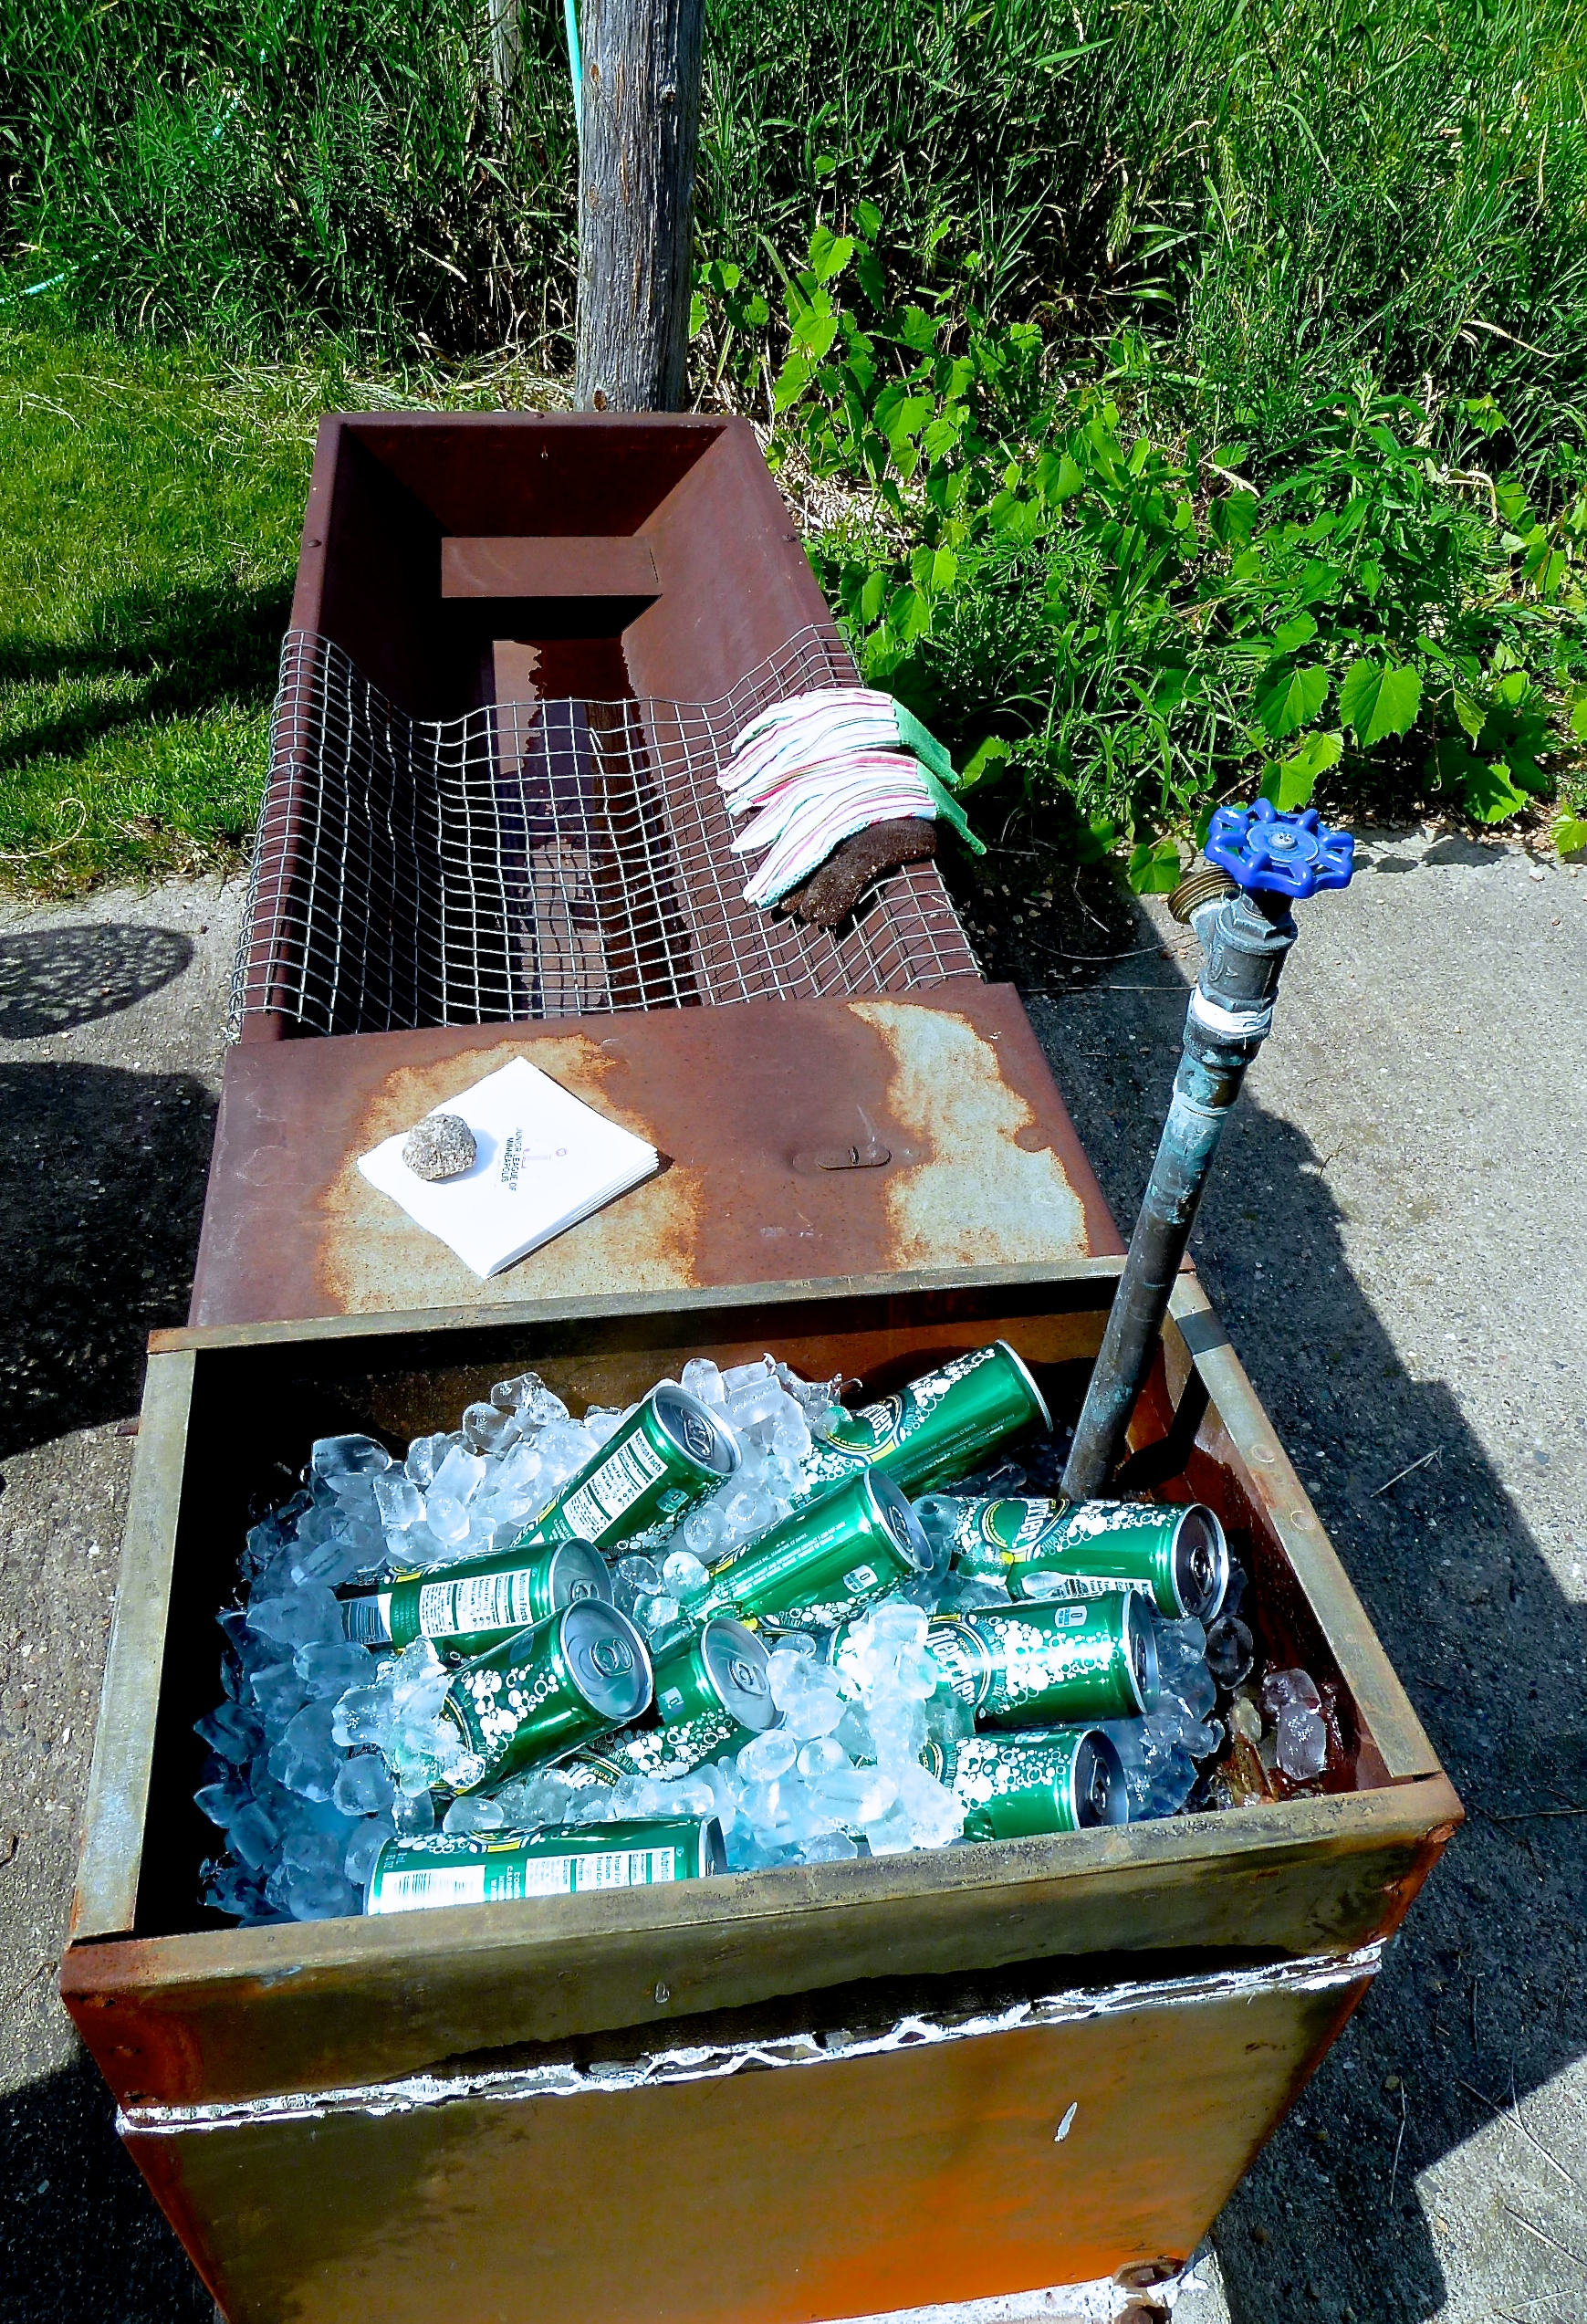 A Trough Full of Perrier